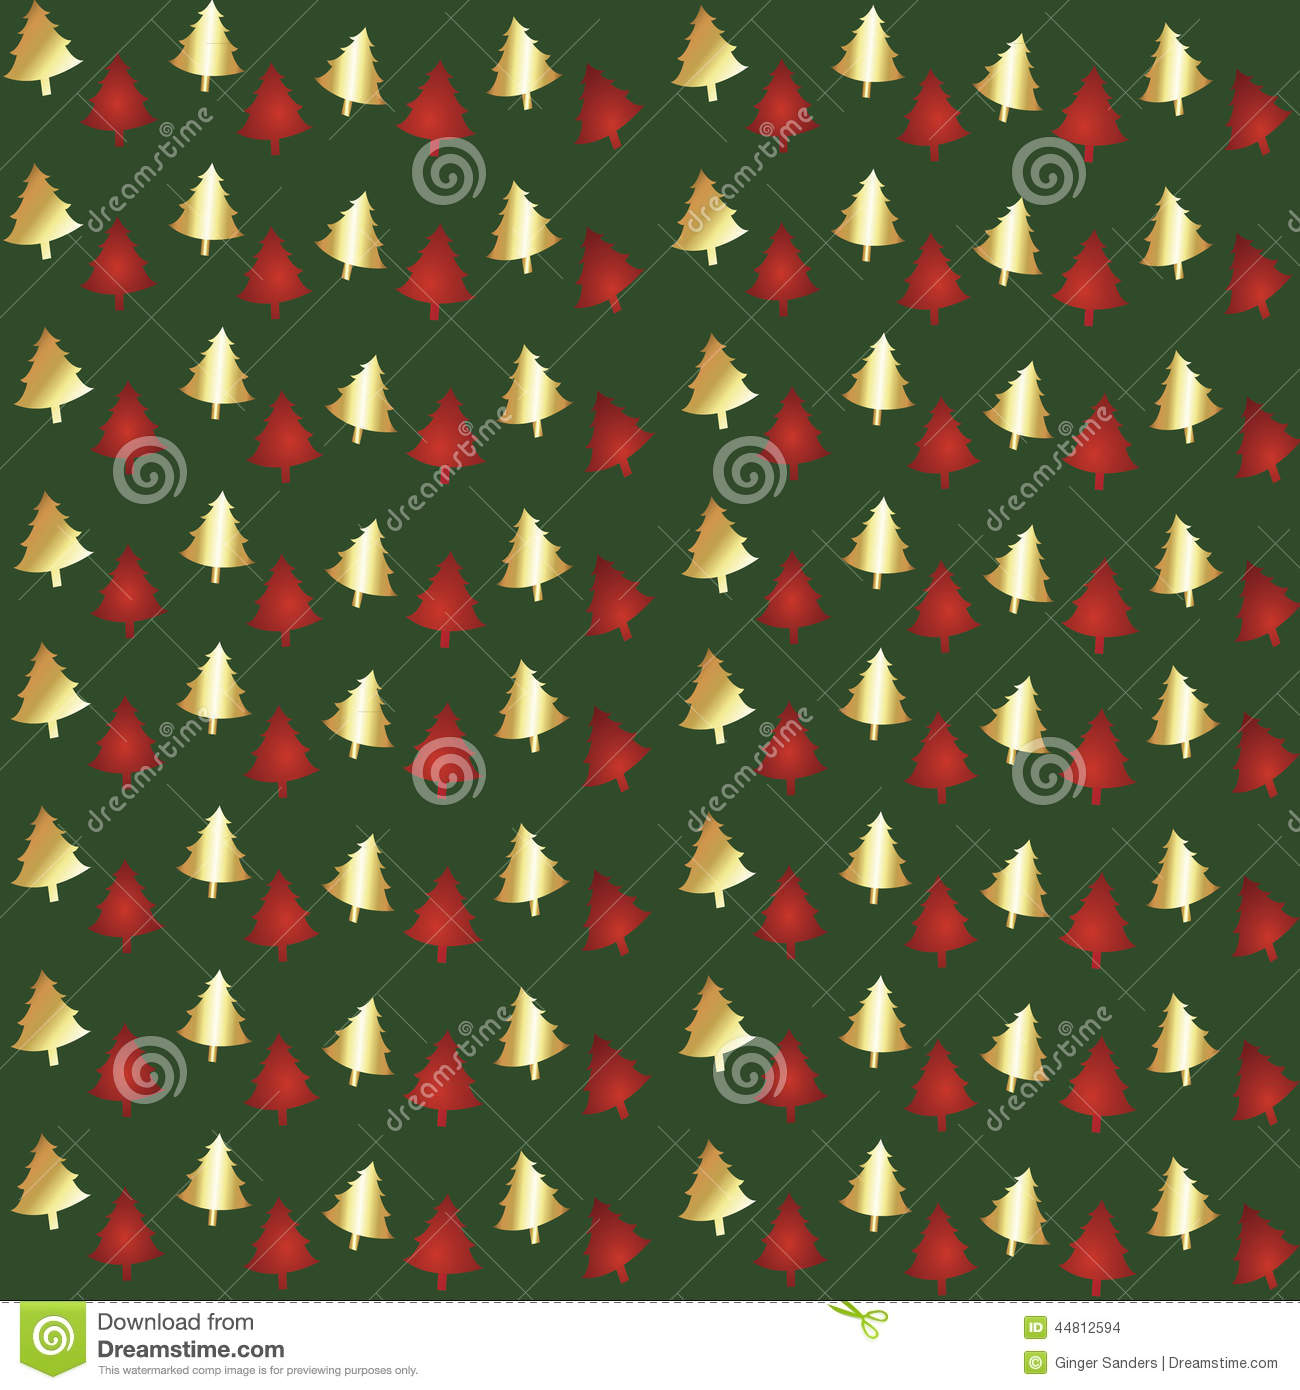 Green Foil Christmas Tree Seamless Background Pattern ...